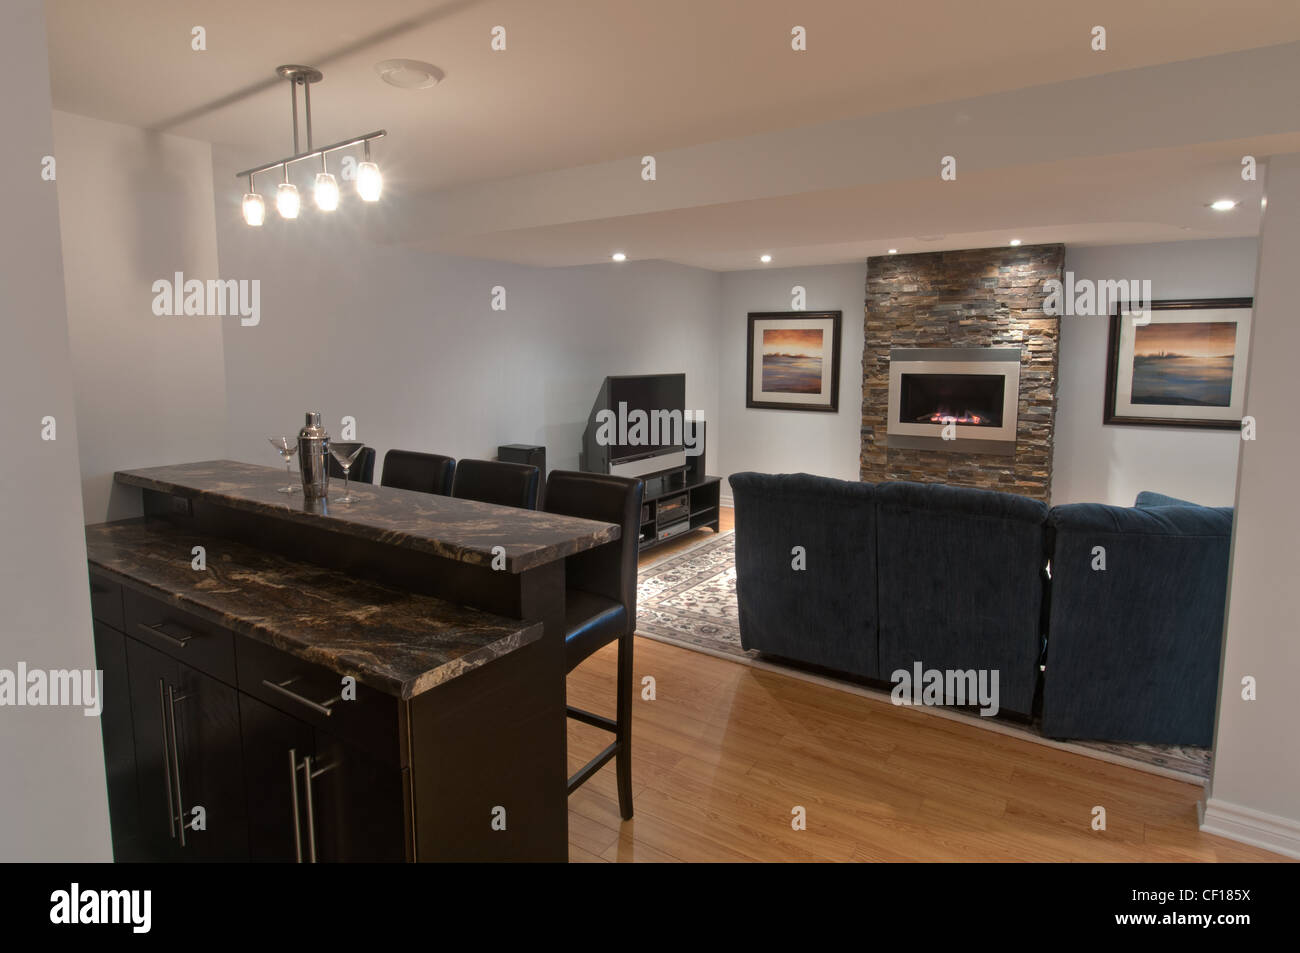 Luxury Basement Living Room With Gas Fireplace And Bar